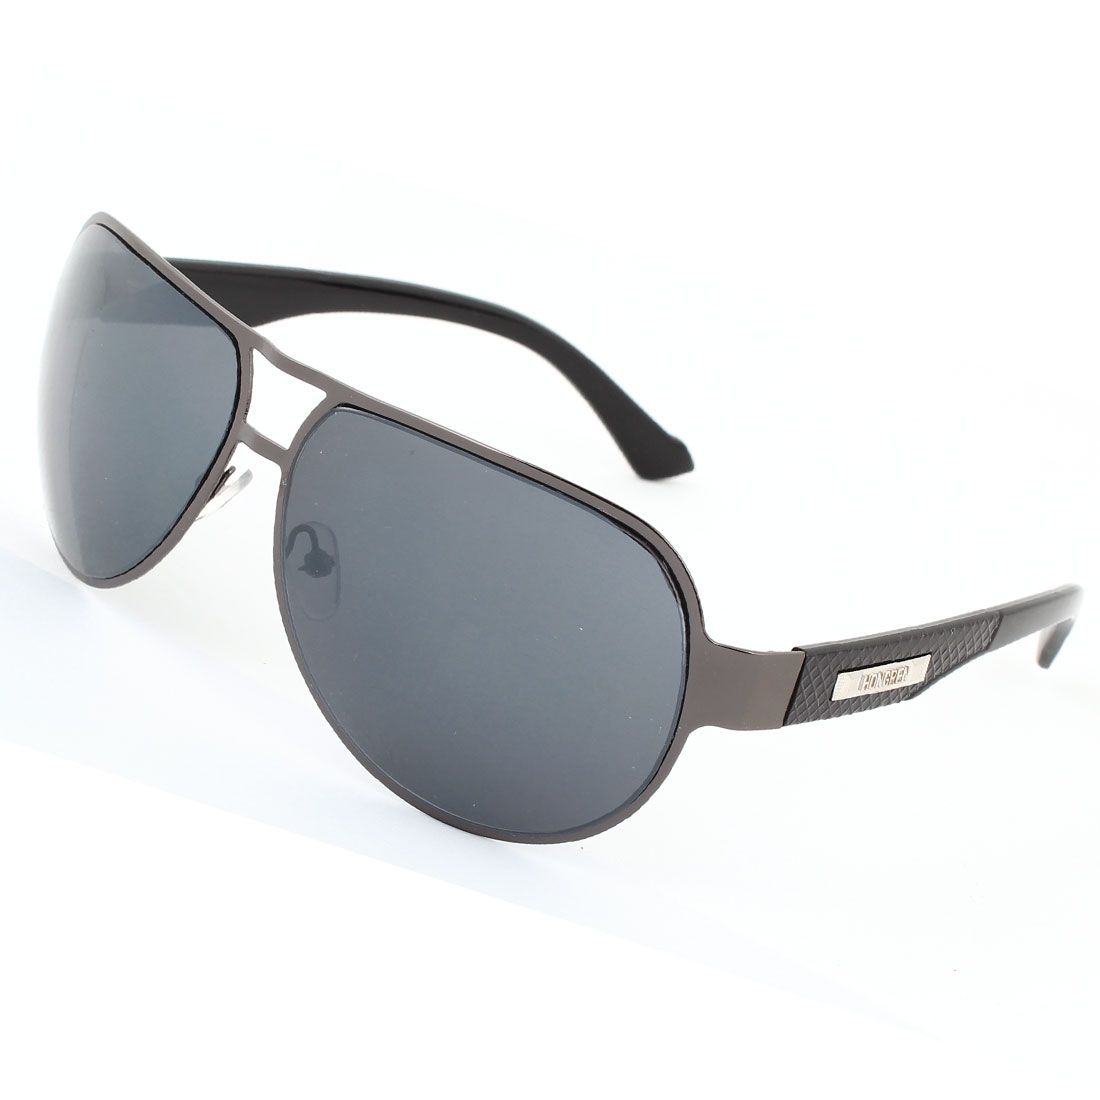 Man Plastic Dark Arms Full Metal Frame Double Bridges Black Lens Sunglasses